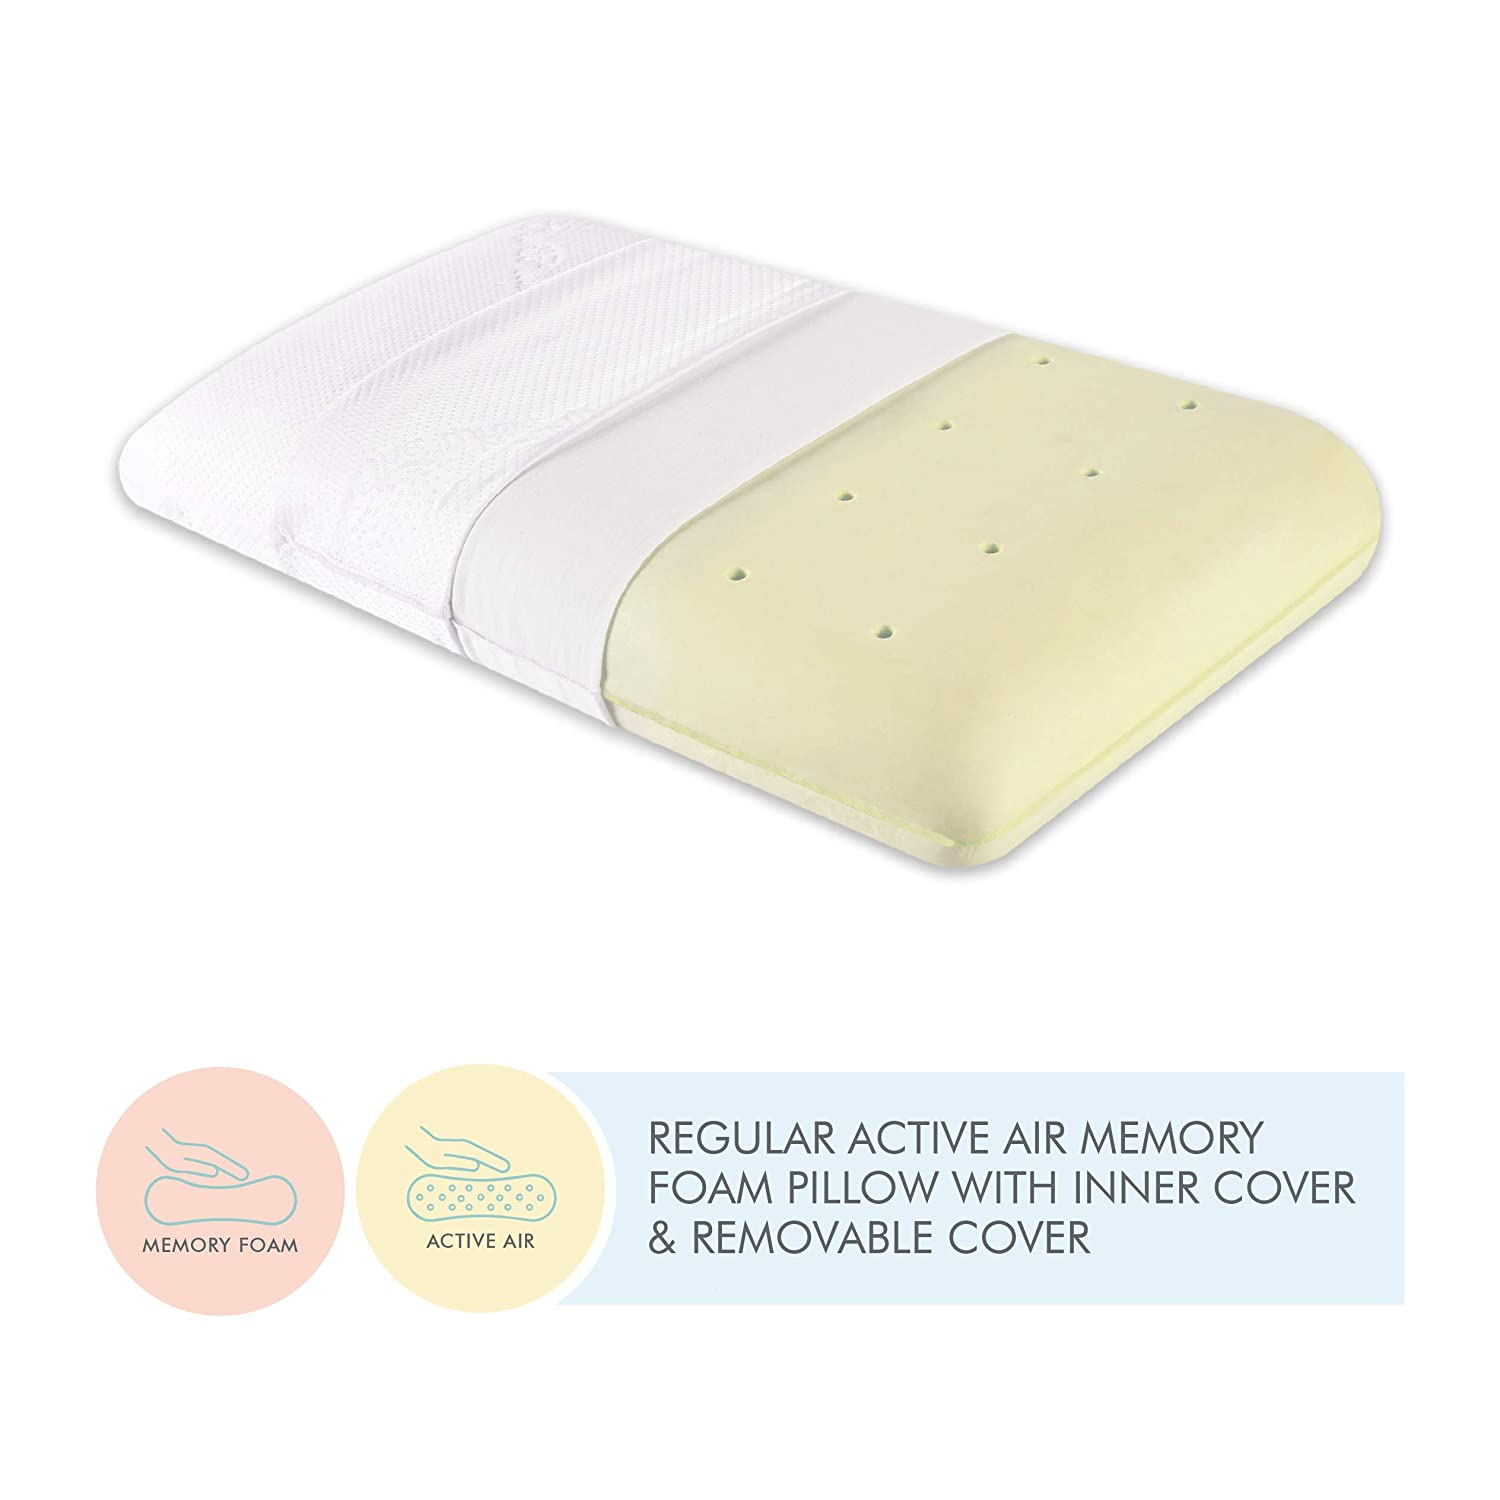 The White Willow Orthopedic Memory Foam Cooling Active Air